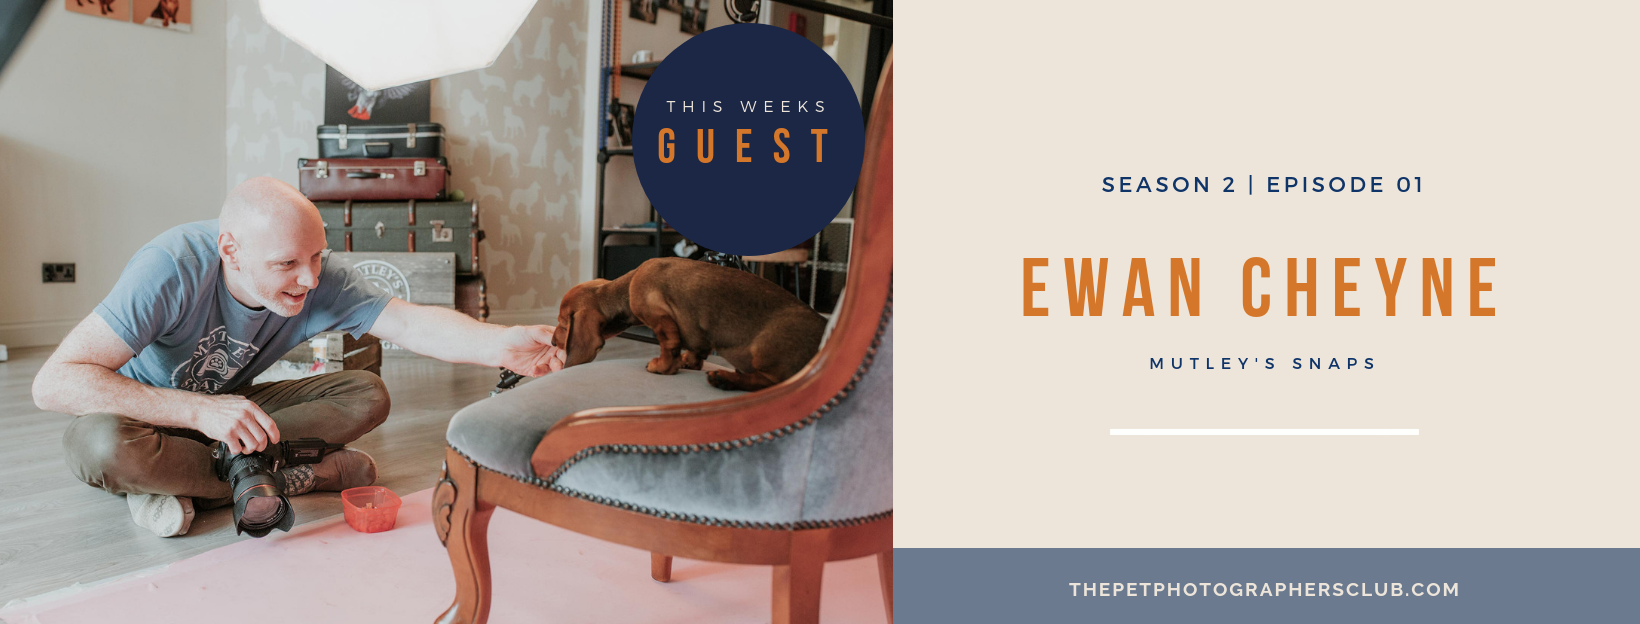 Chatting originality for pet photographers with Ewan Cheyne.png